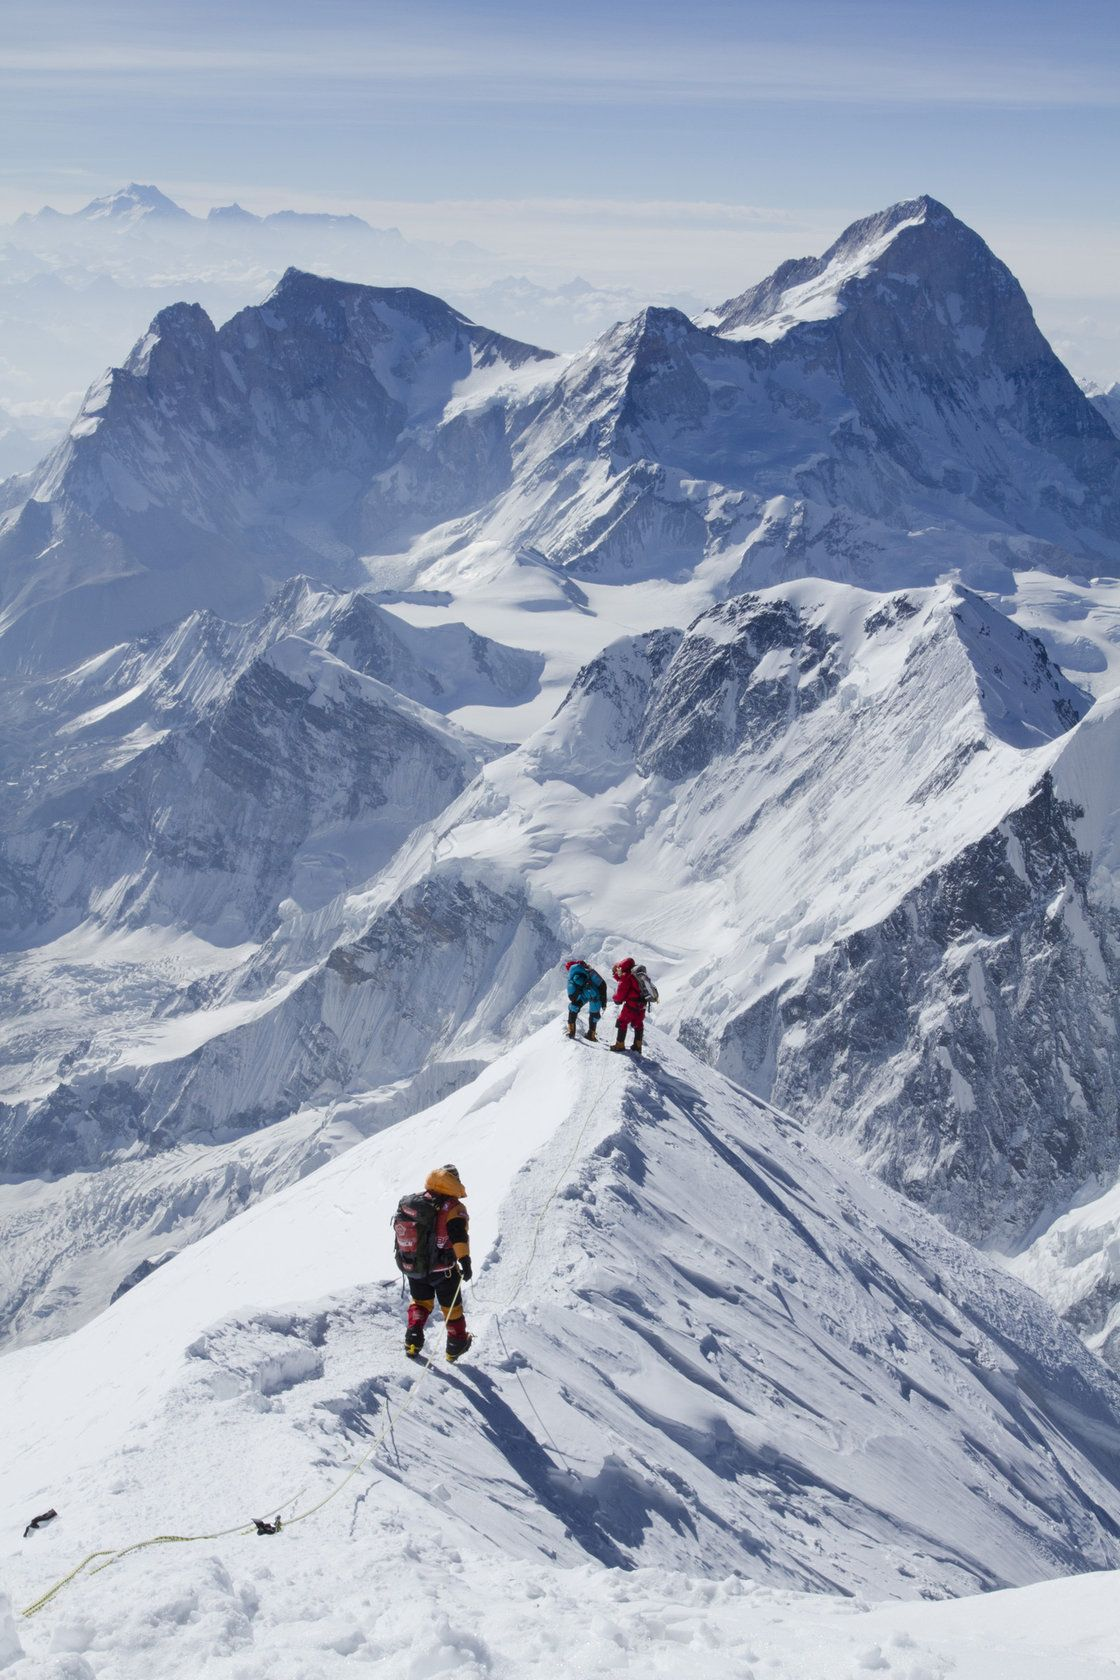 Mount Everest Climber Warns Of An Overpopulated Mountain